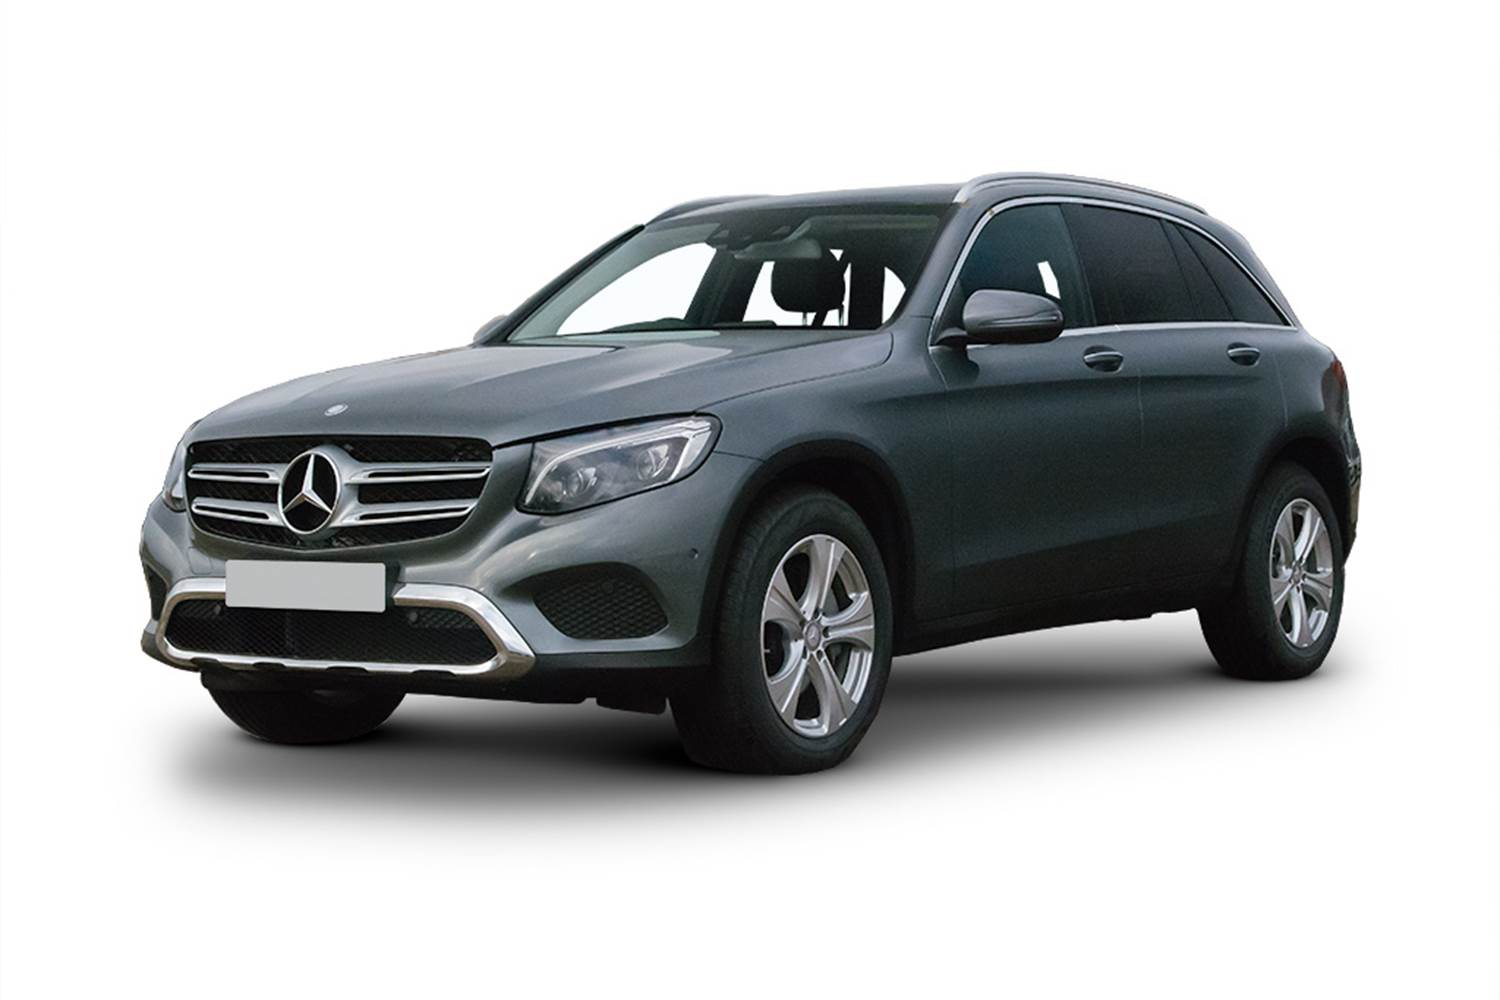 MERCEDES-BENZ GLC GLC220 SUV 4MATIC 5Dr 2.1 d 170 AMG Line 5Dr G-Tronic